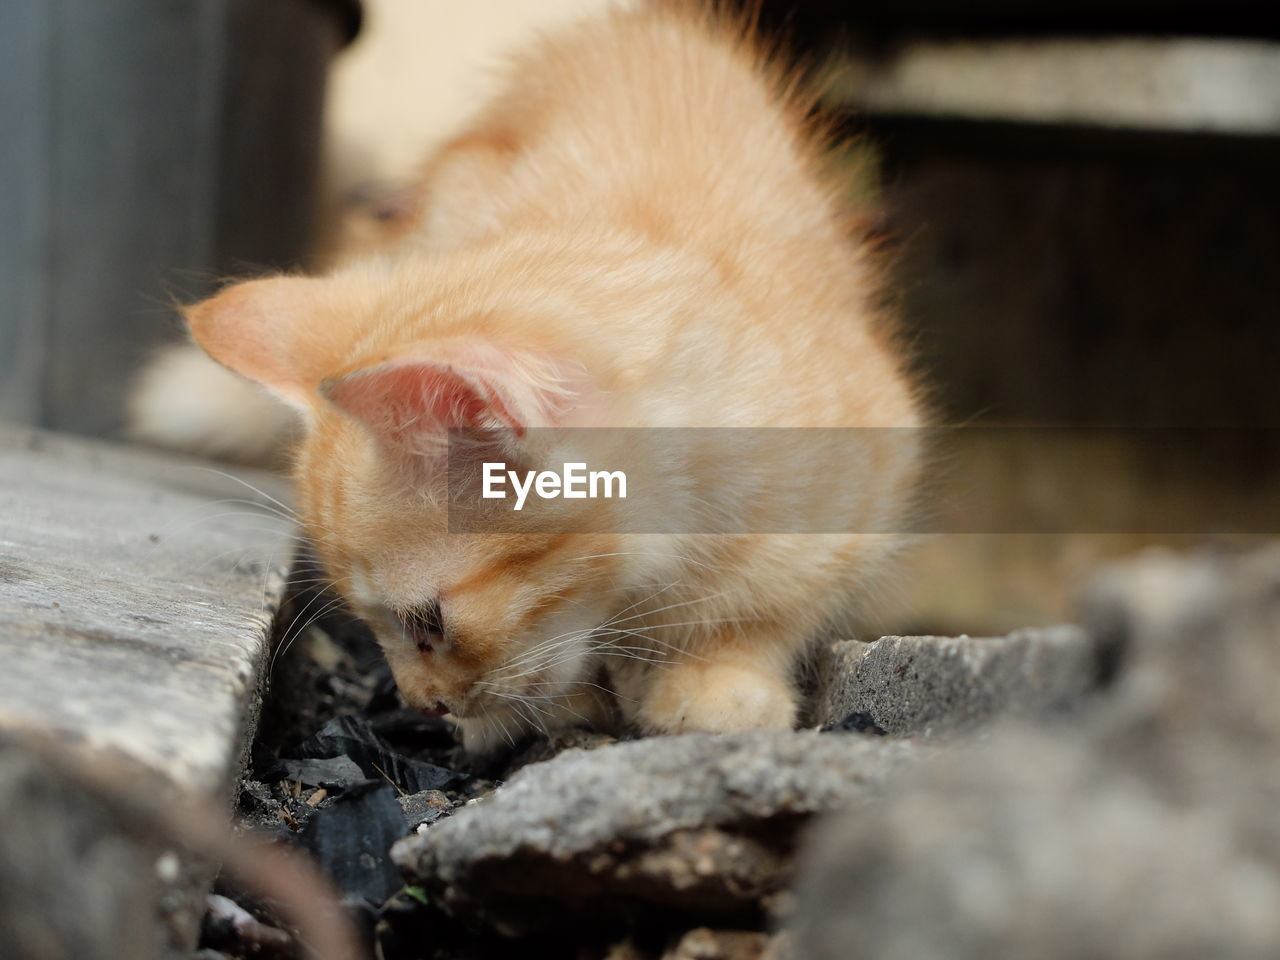 animal themes, mammal, animal, one animal, pets, domestic, vertebrate, domestic animals, domestic cat, feline, cat, no people, selective focus, relaxation, solid, day, close-up, rock, outdoors, whisker, ginger cat